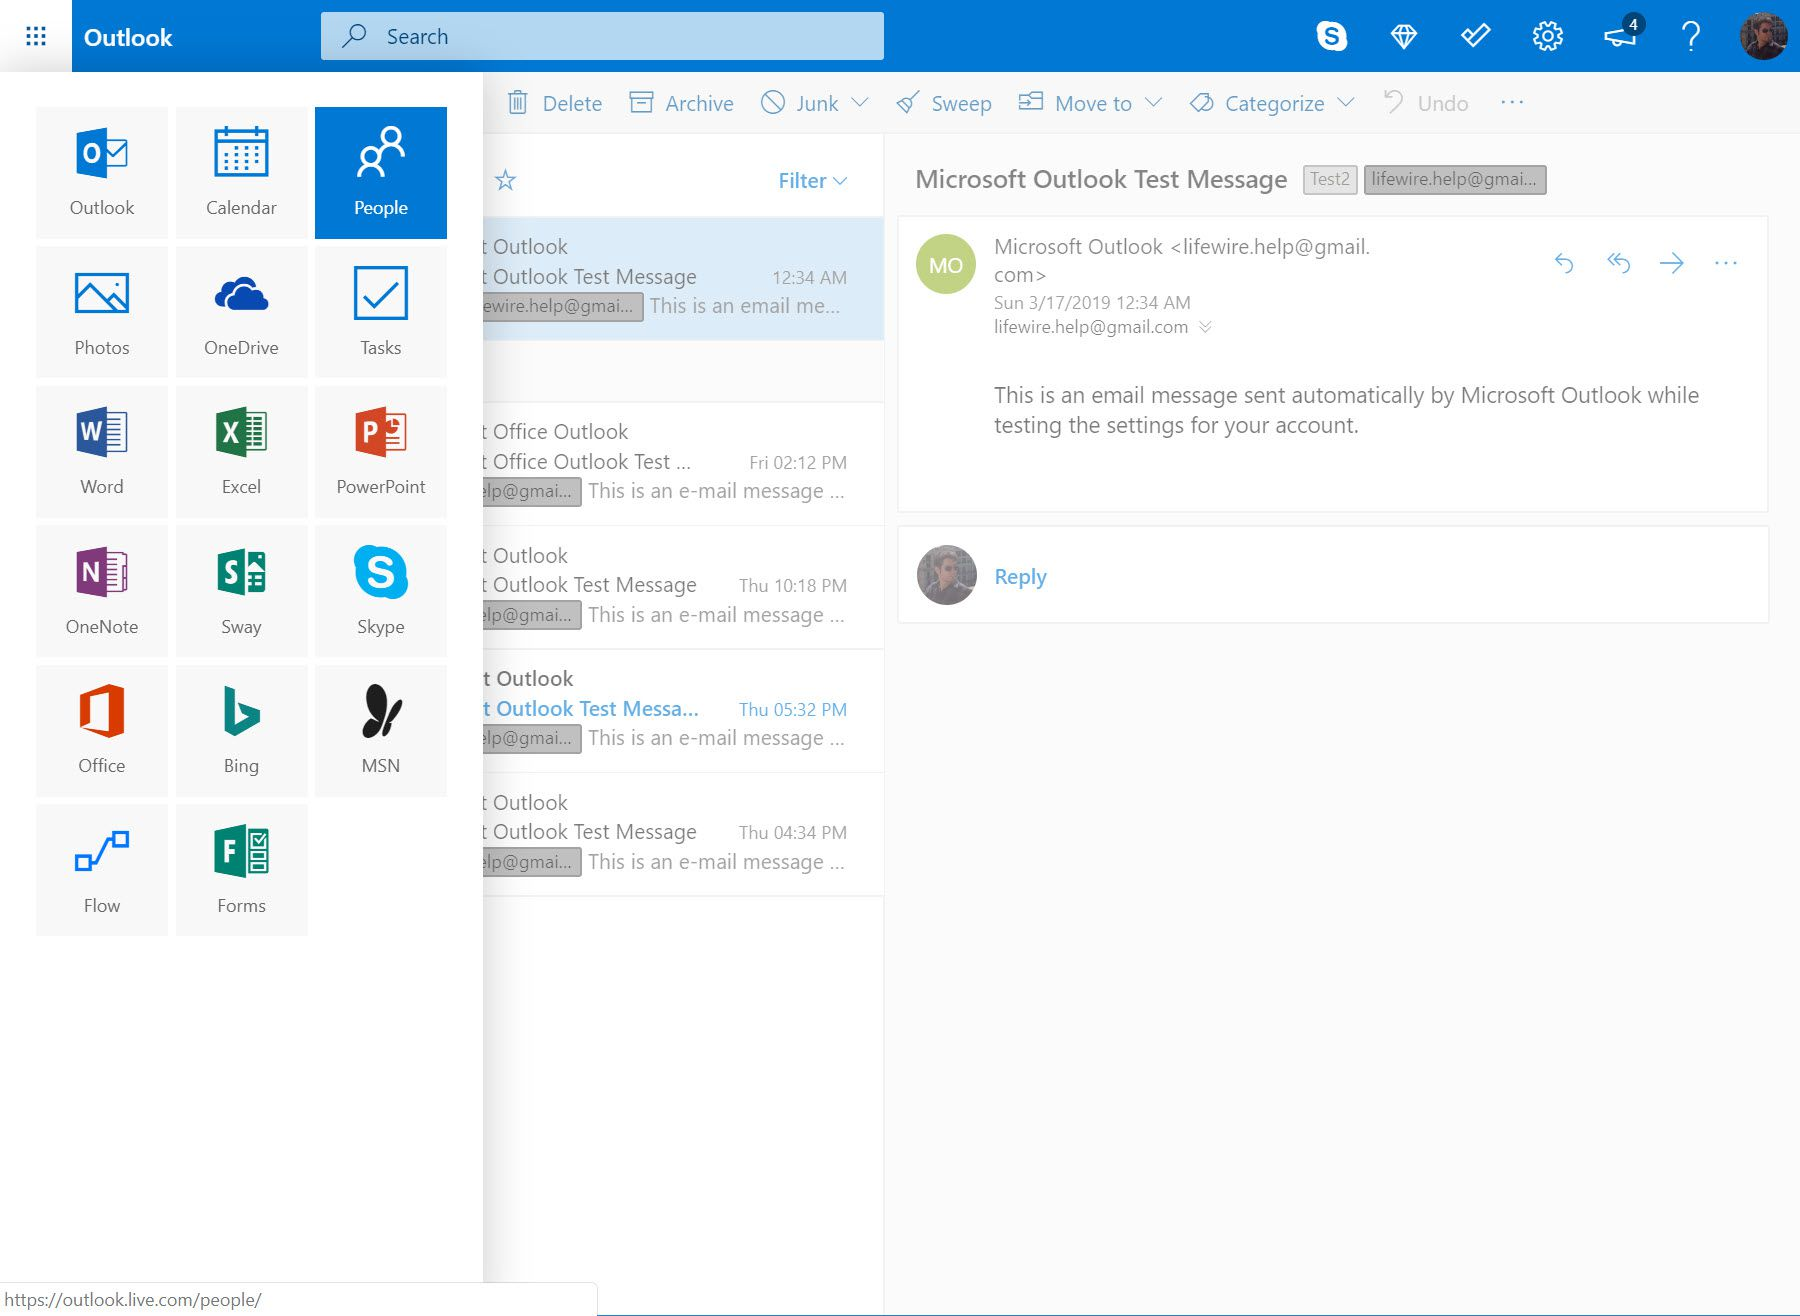 How to Create a Mailing List in Outlook